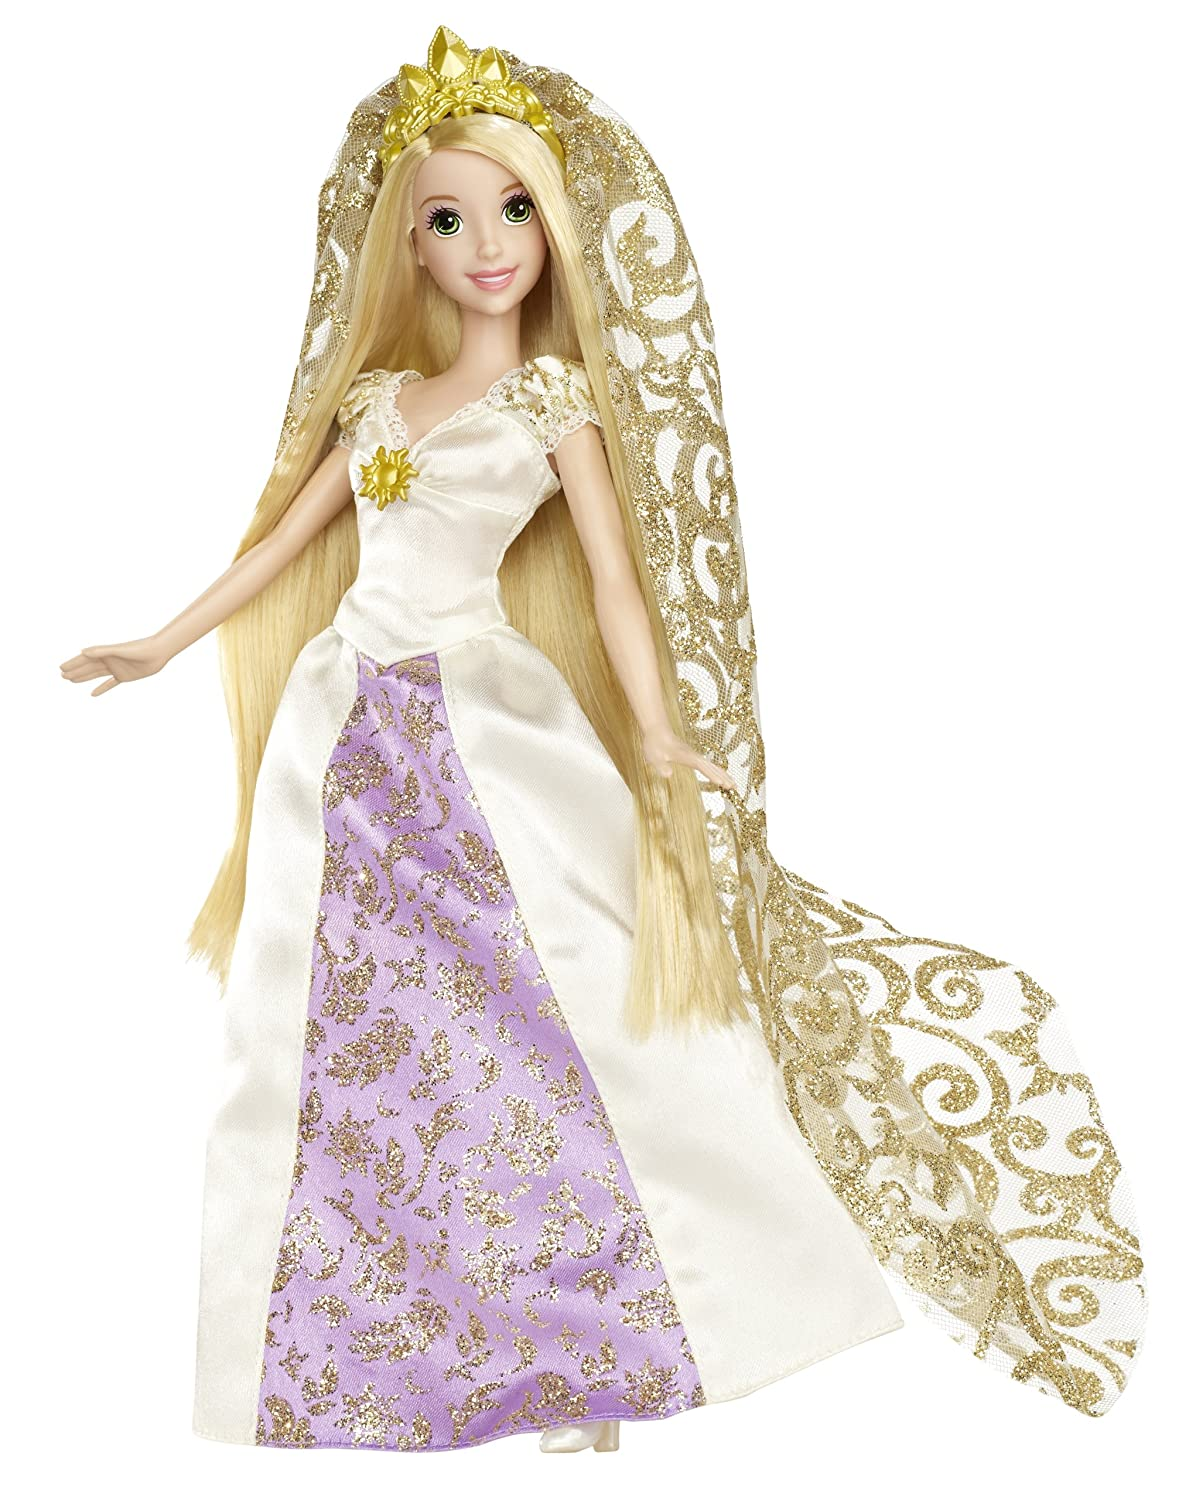 Amazon.com: Disney Princess Rapunzel Bridal Doll: Toys & Games